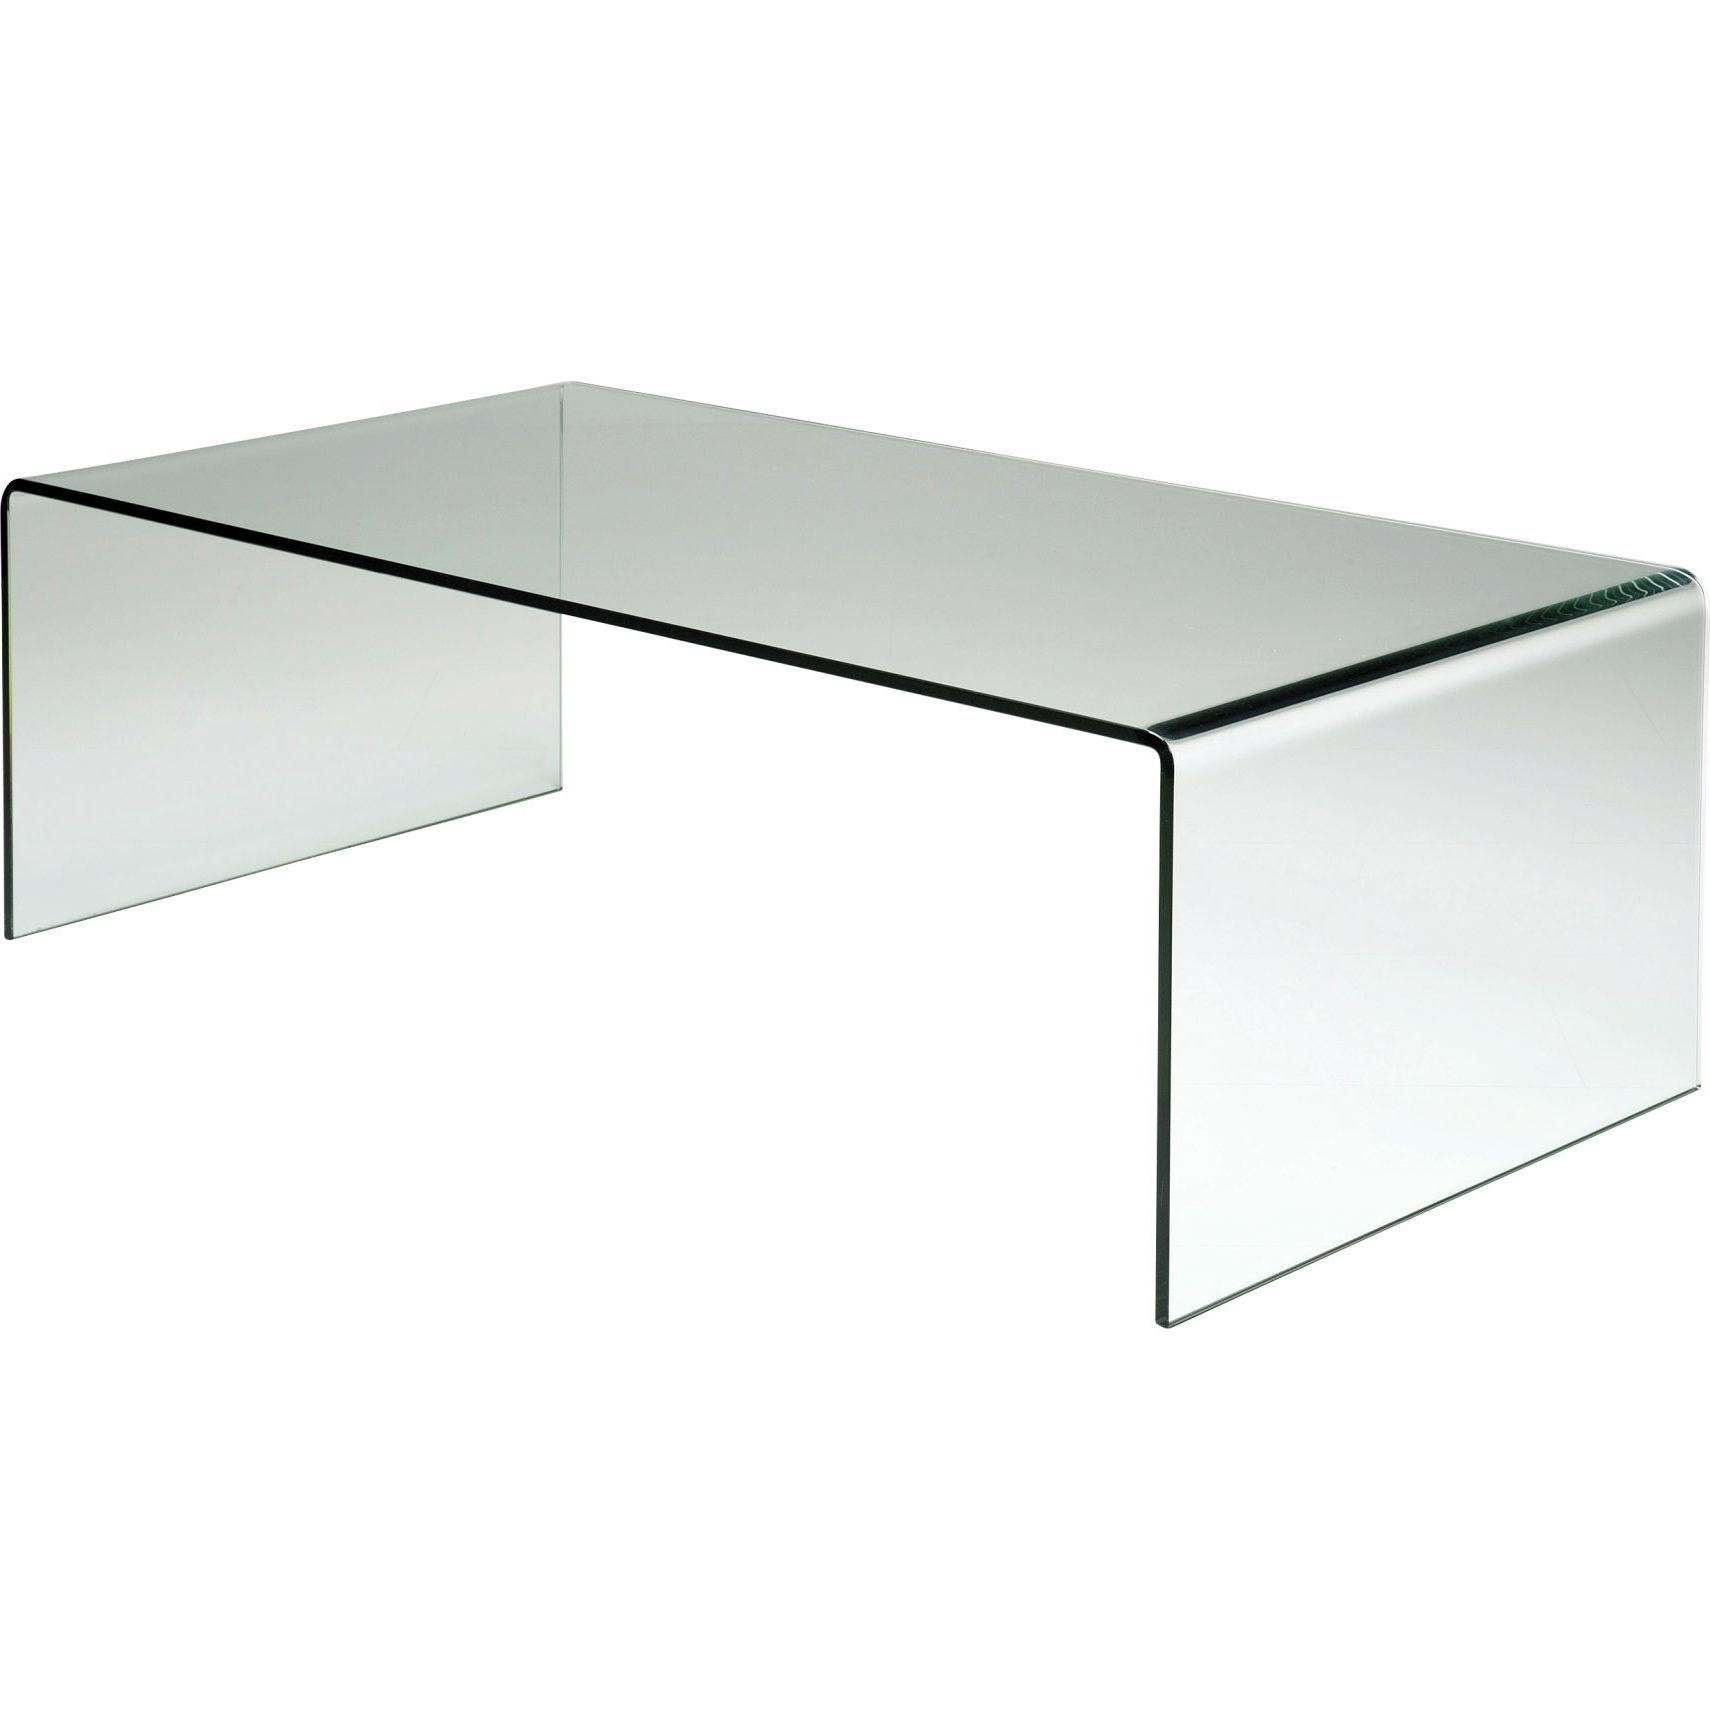 Most Popular Square Waterfall Coffee Tables With Regard To Waterfall Coffee Table (View 12 of 20)